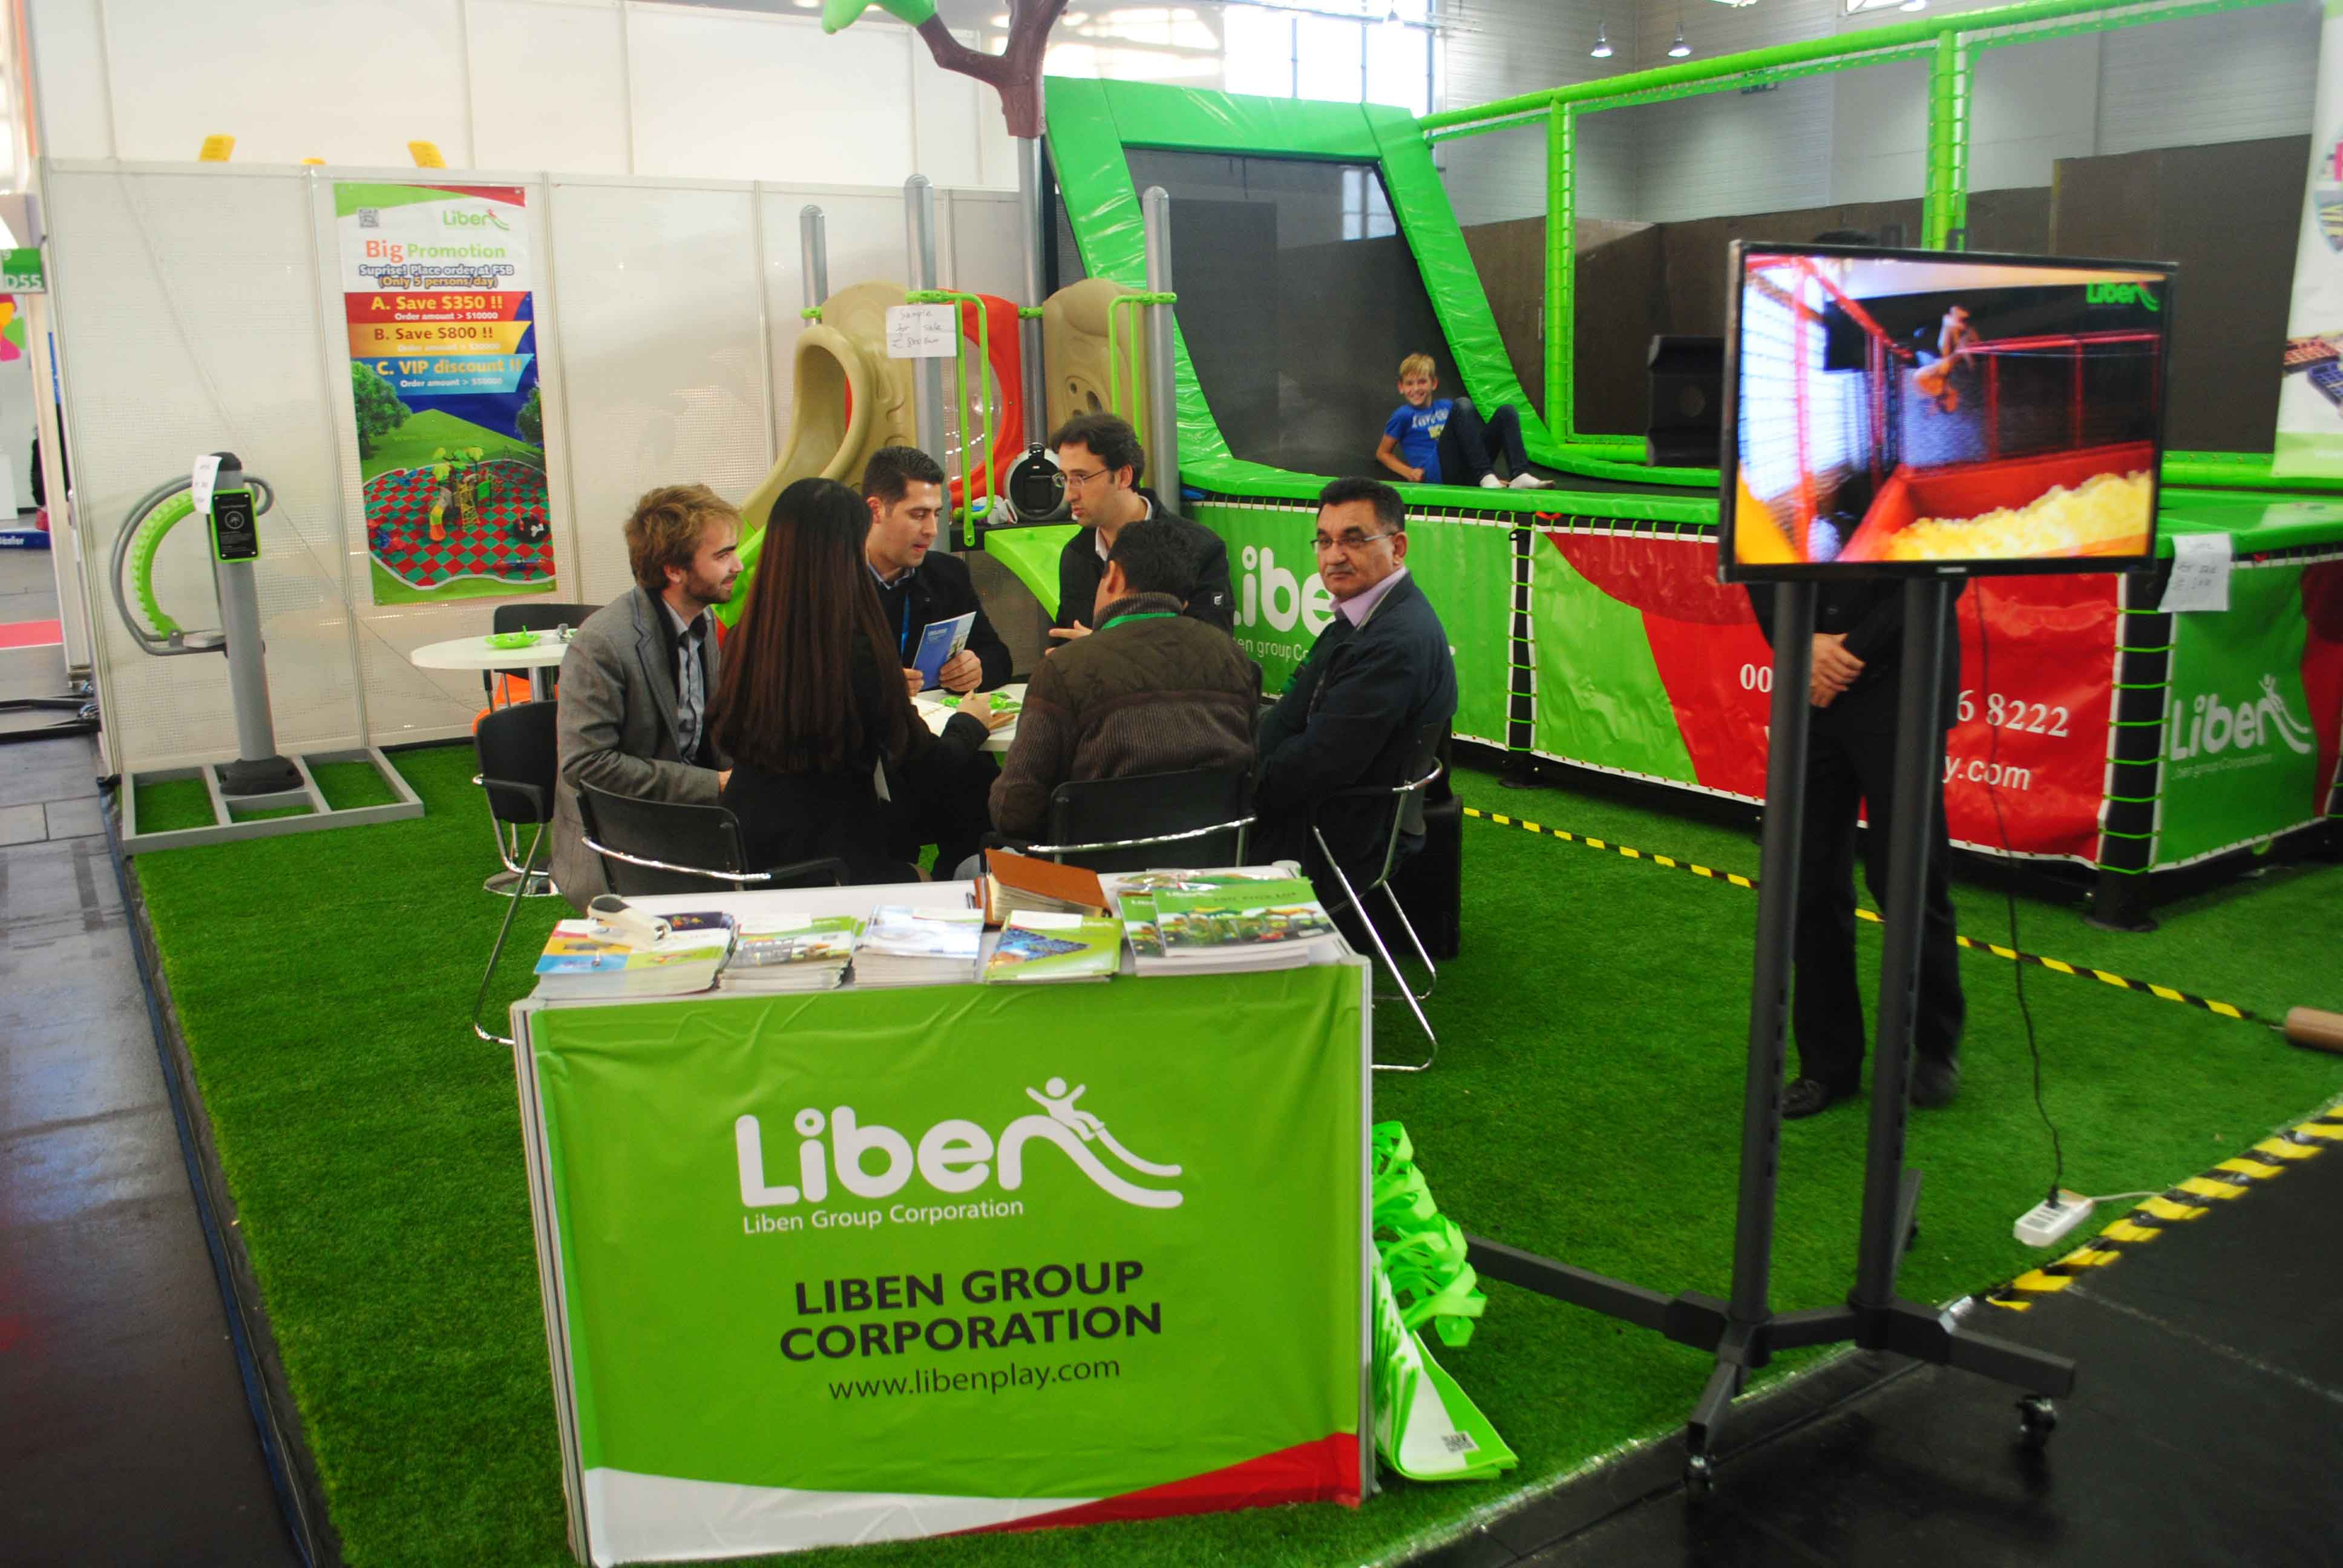 Liben Group Corporation attend 2015 FSB Trade Fair in Cologne, Germany